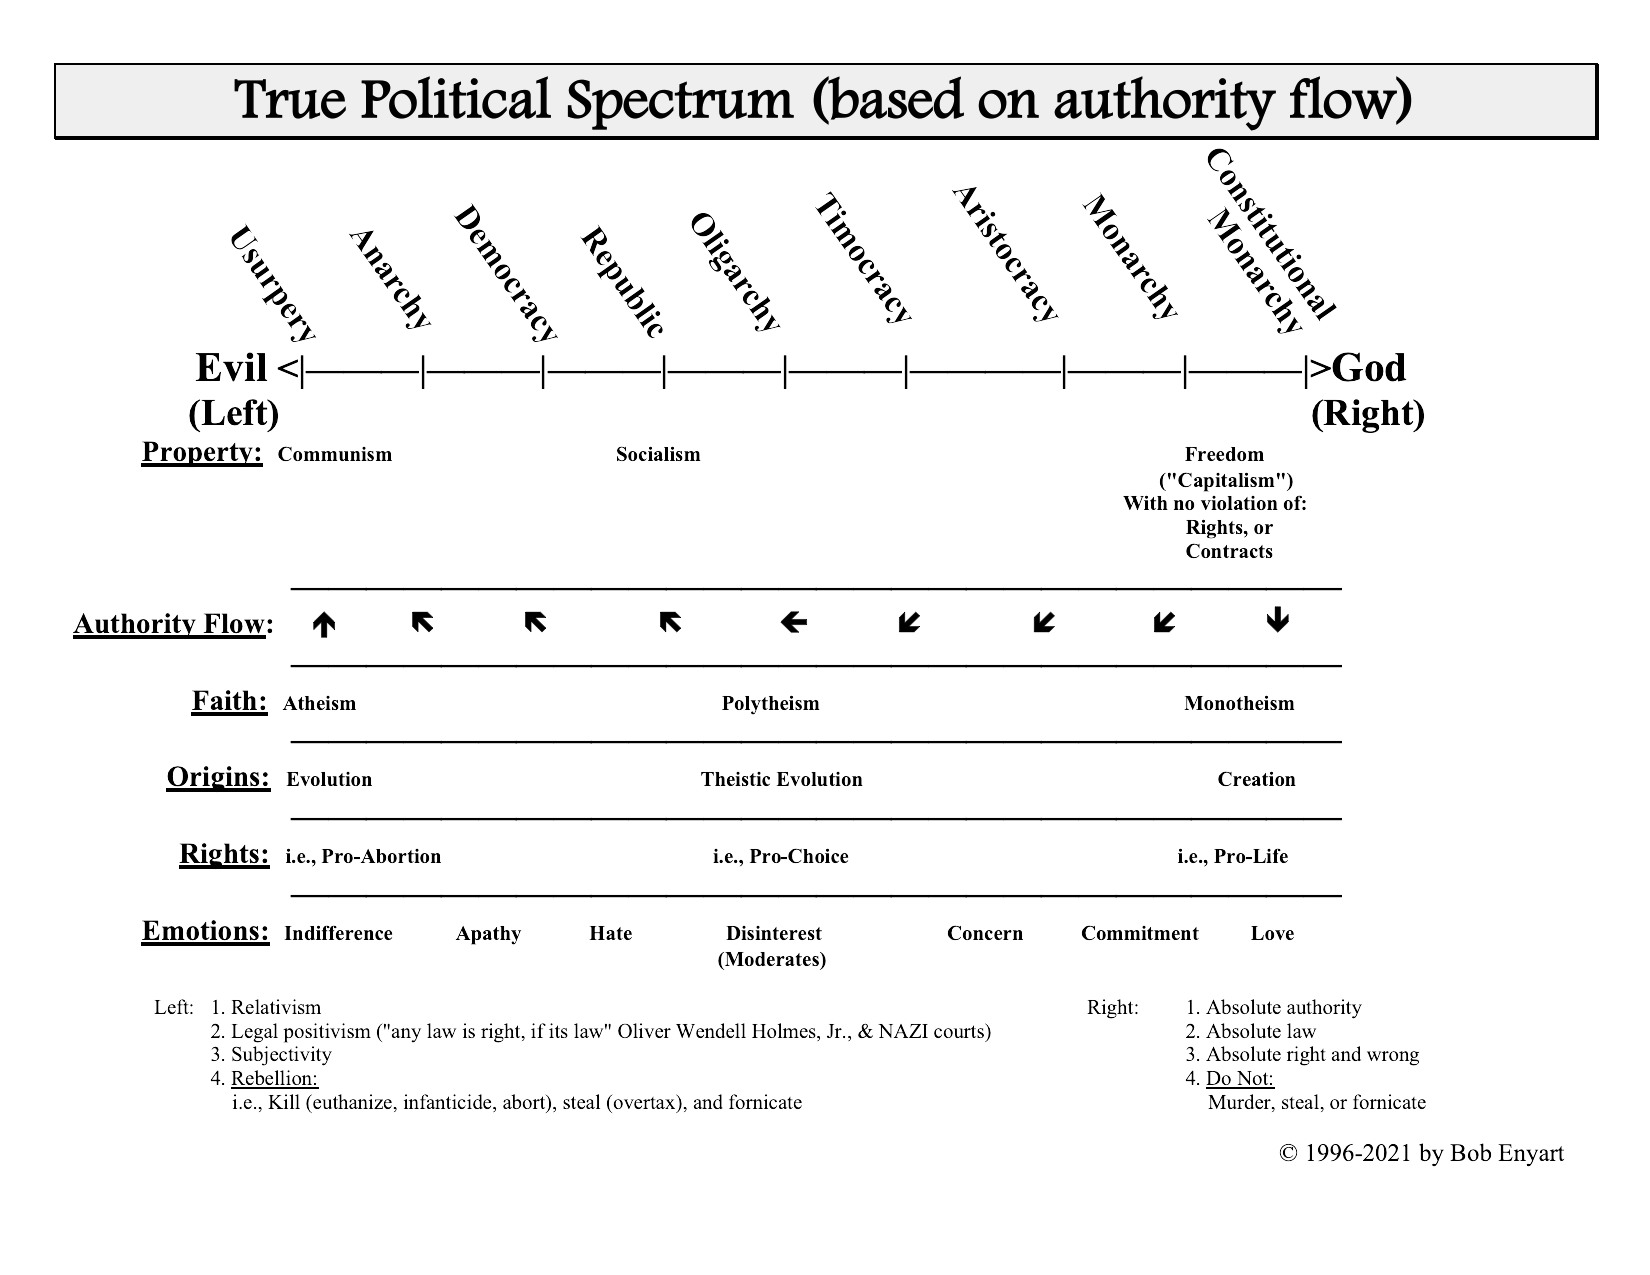 A valid political spectrum chart (i.e., not the typical conservartive chart, and not leftist)